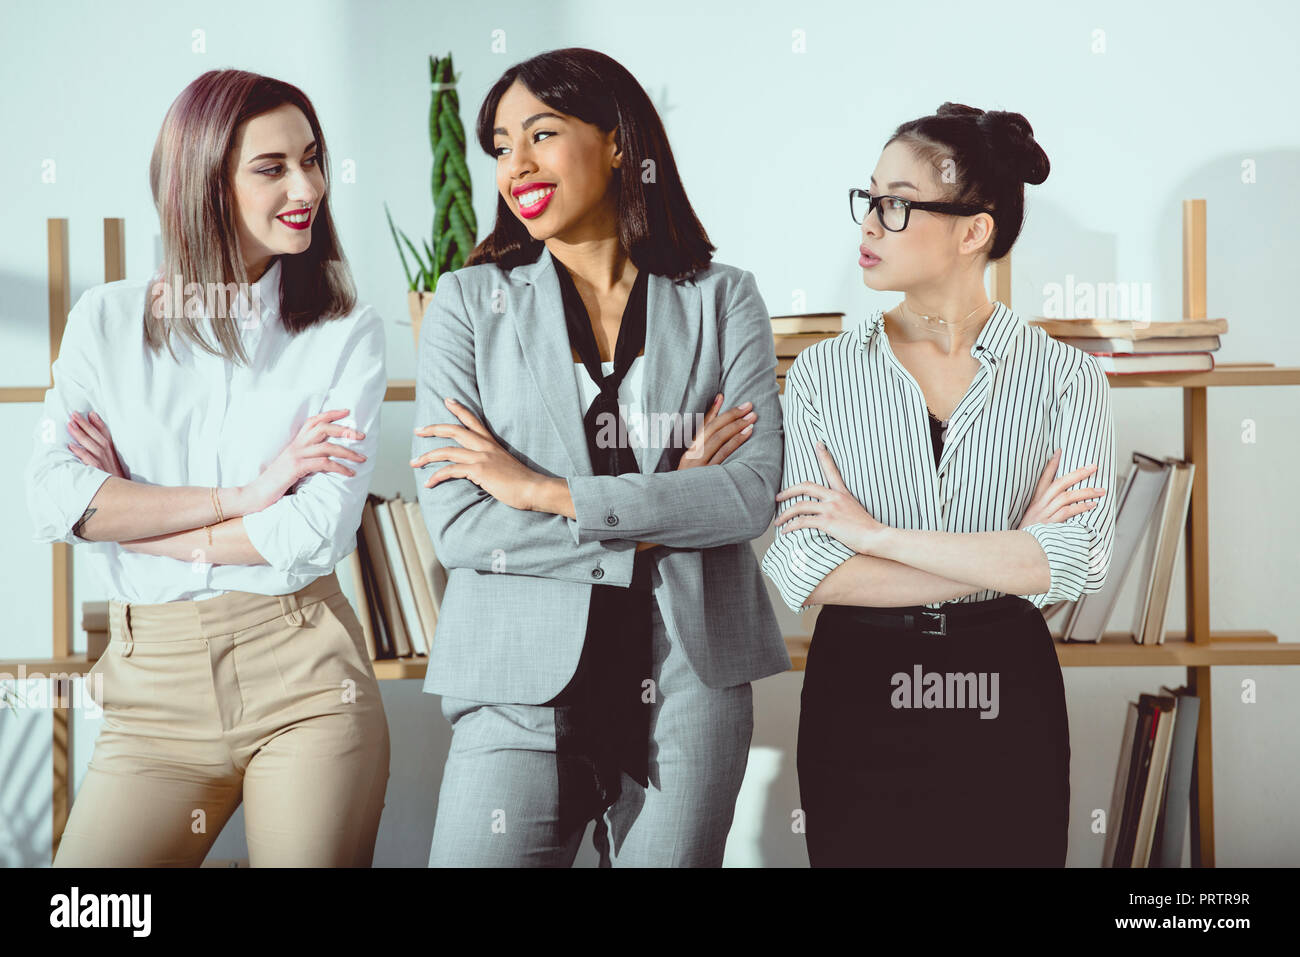 smiling multiethnic businesswomen in formal wear standing with arms crossed - Stock Image